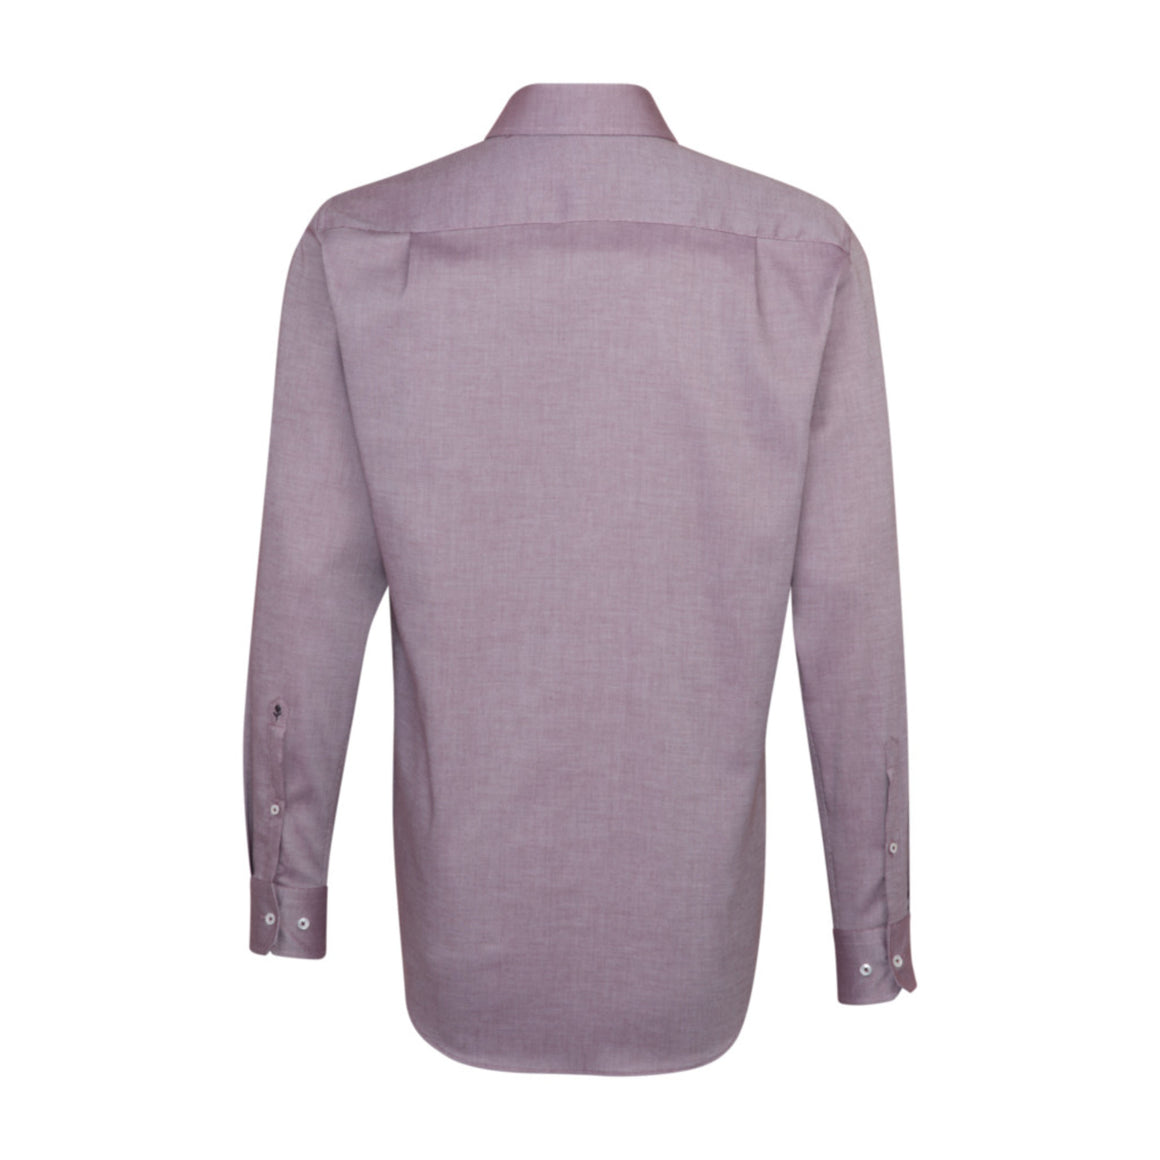 Plain Surface Structure Shirt for Men in Burgundy